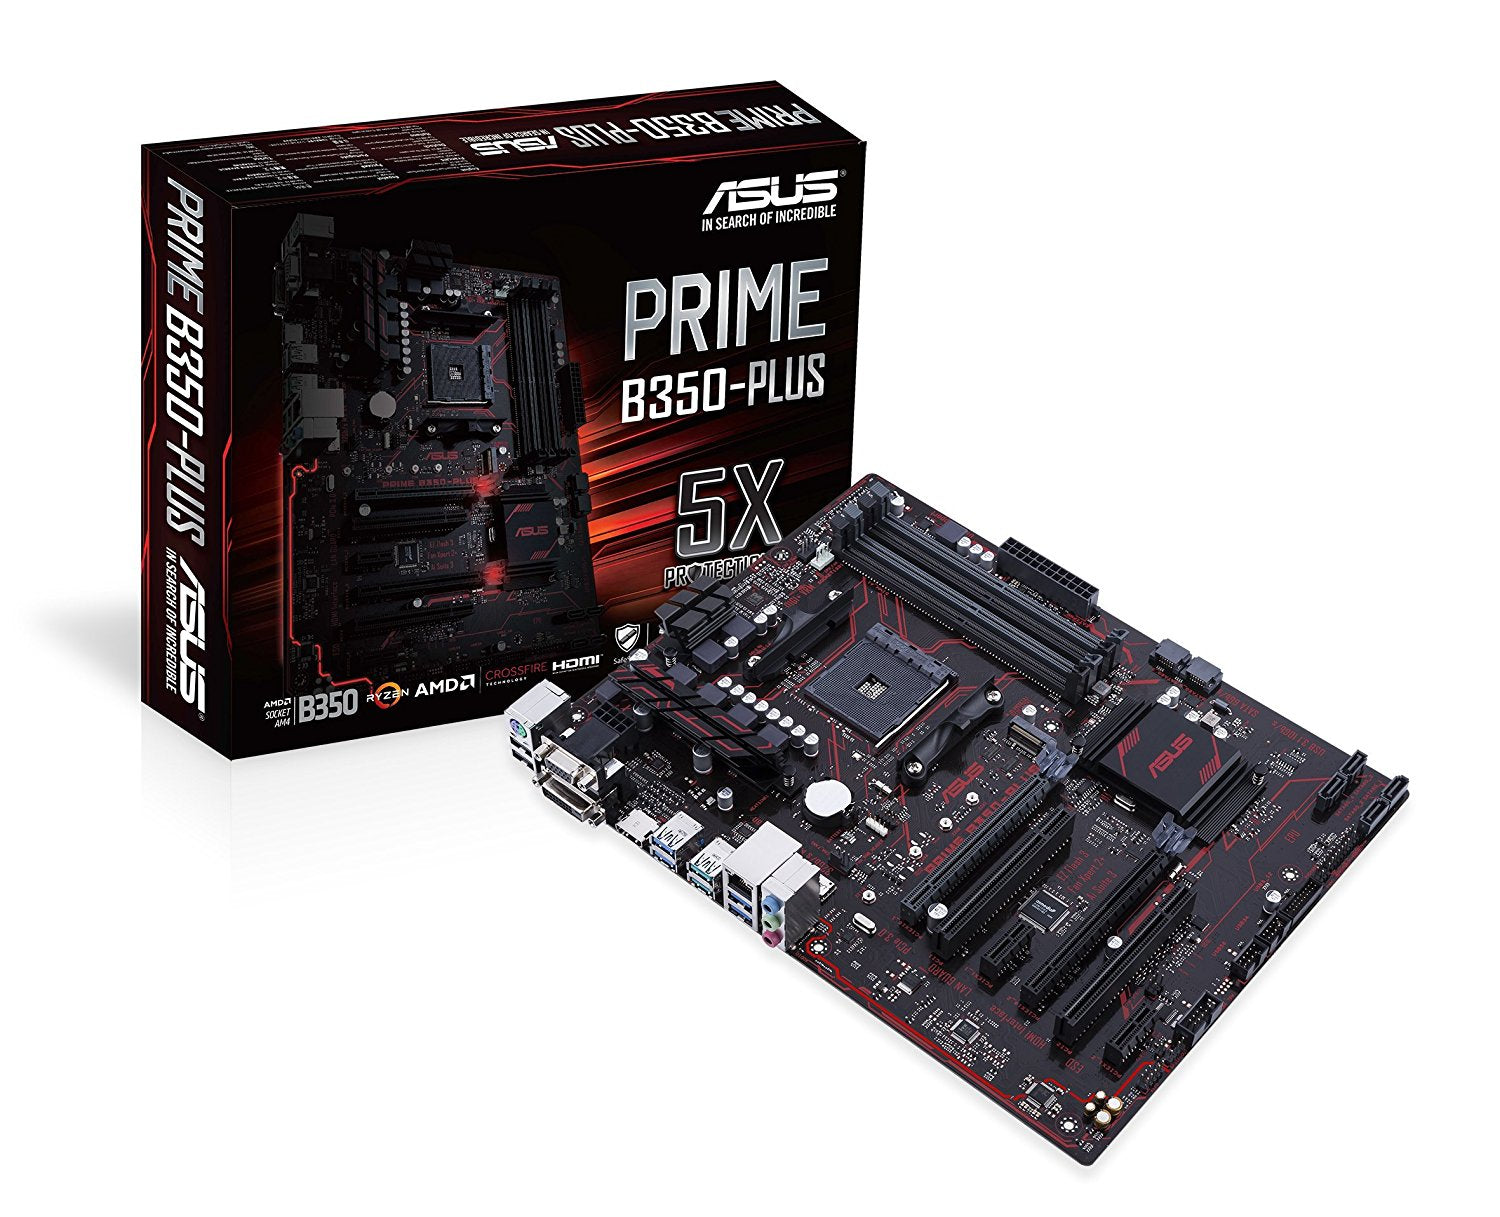 ASUS PRIME B350-PLUS AM4 AMD RYZEN B350 SATA 6Gb/s USB 3.1 USB 3.0 HDMI ATX Motherboard